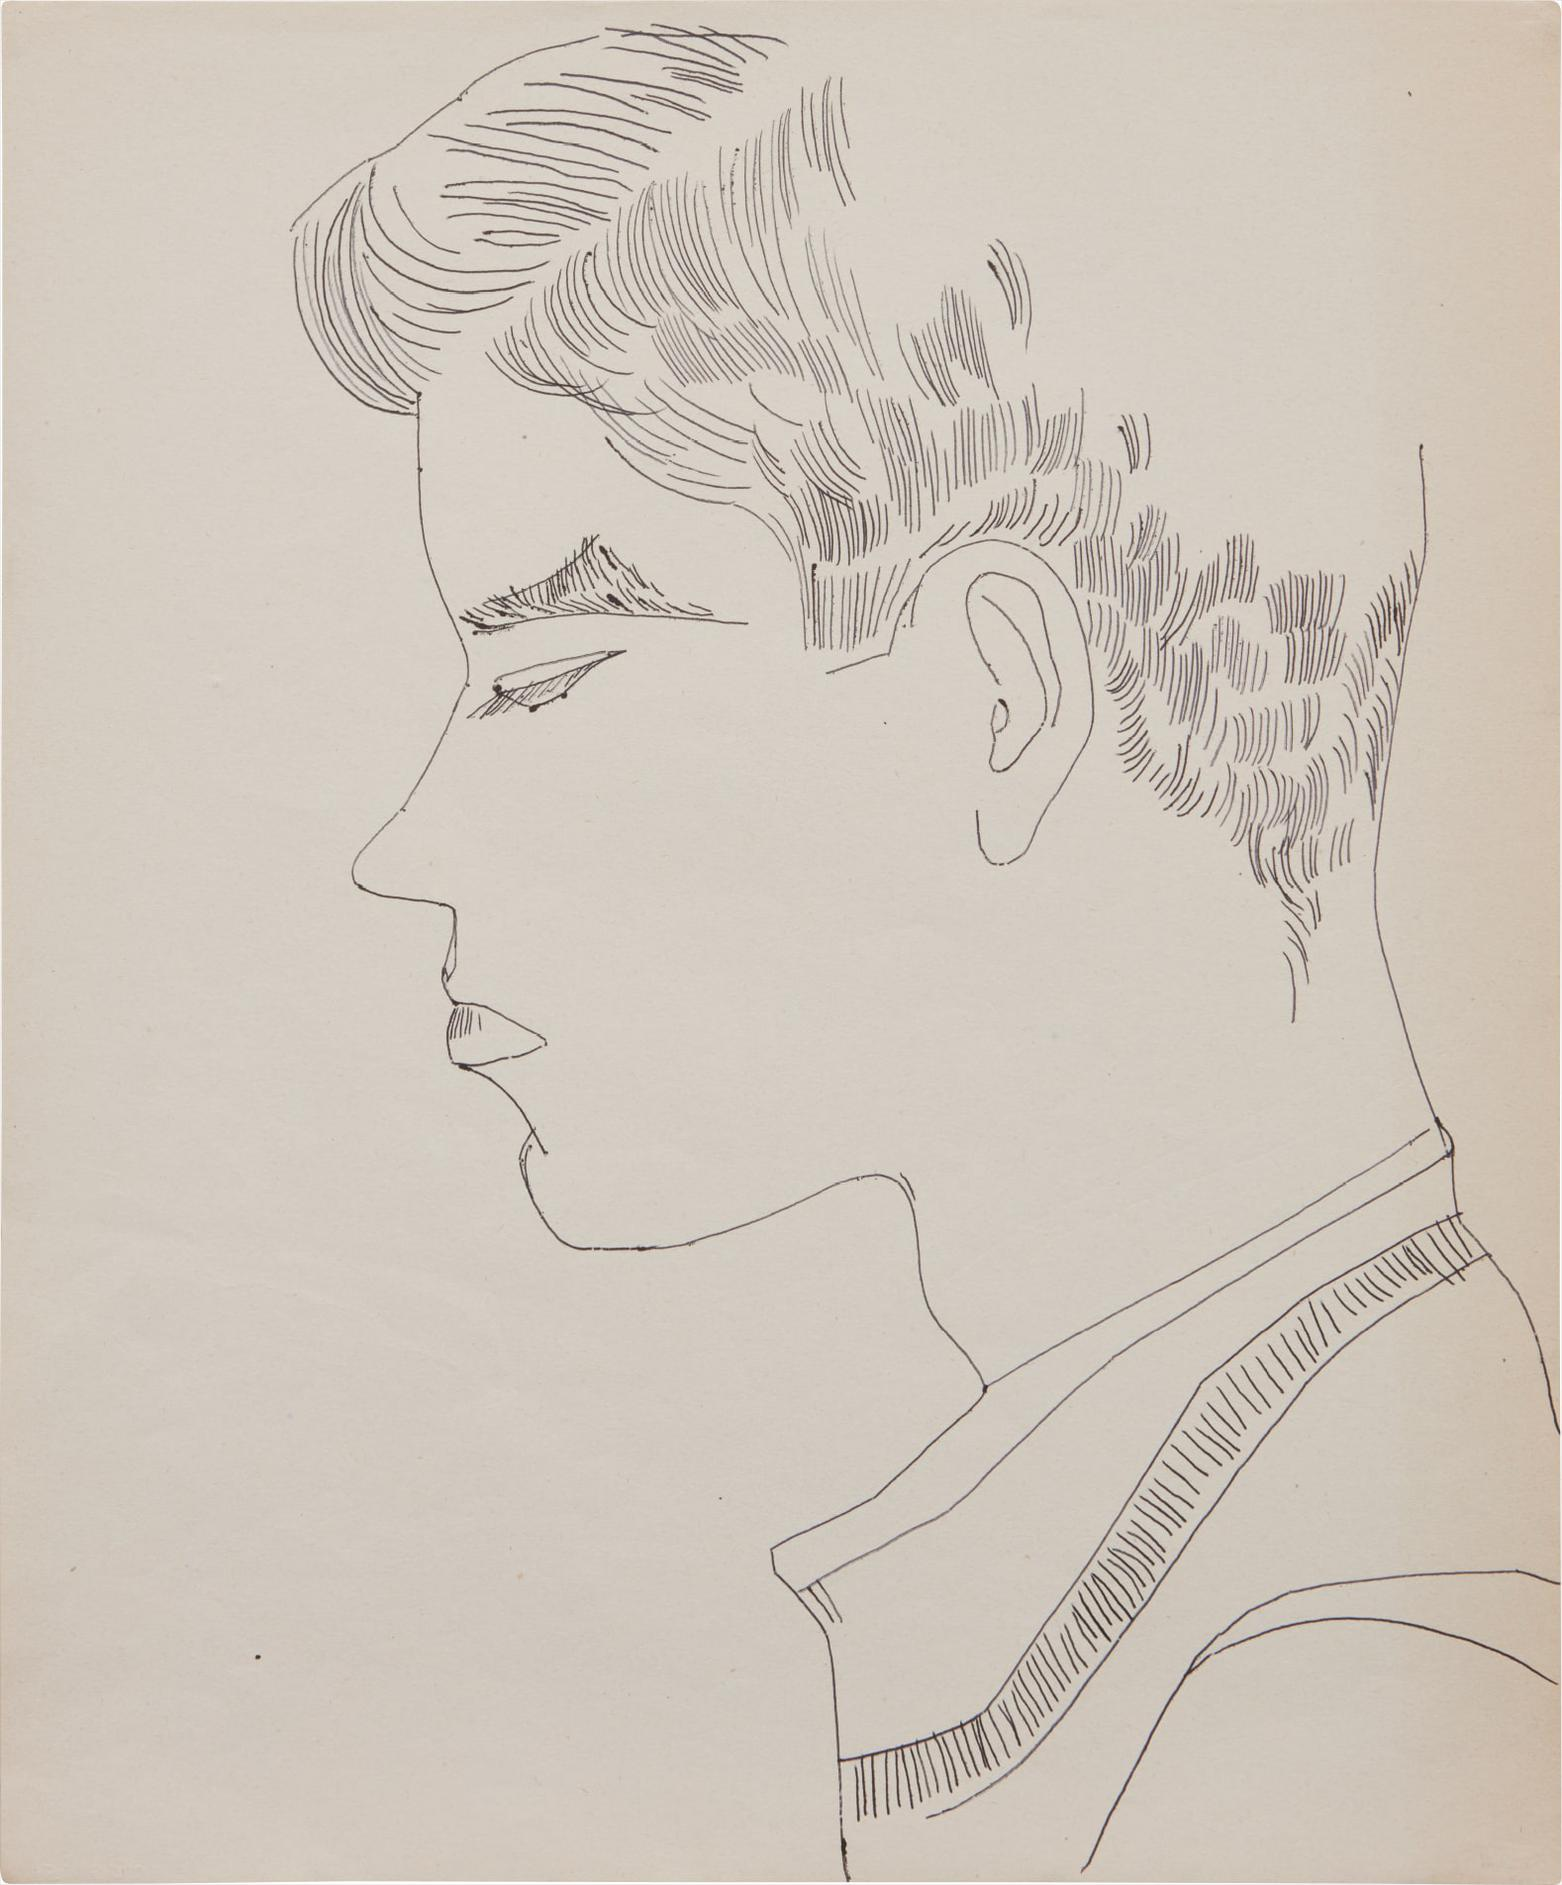 Andy Warhol-Boy-1956